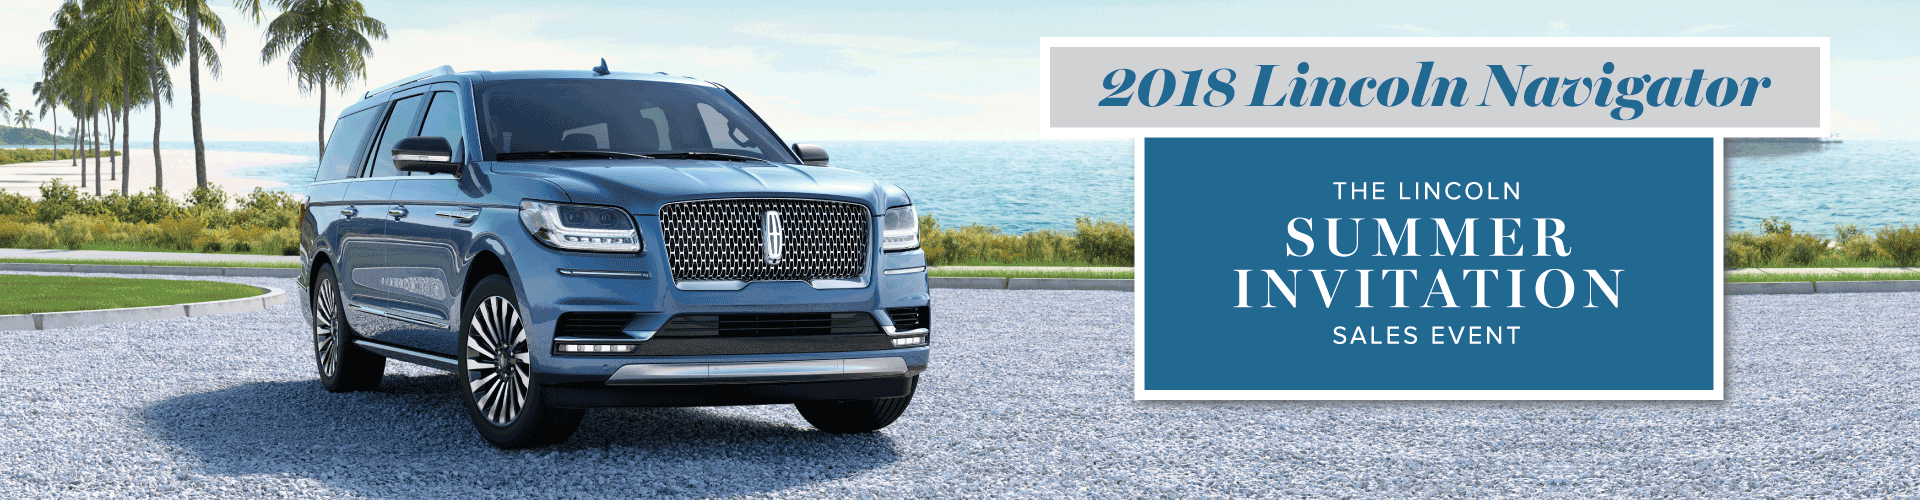 2018 Lincoln Navigator Offers